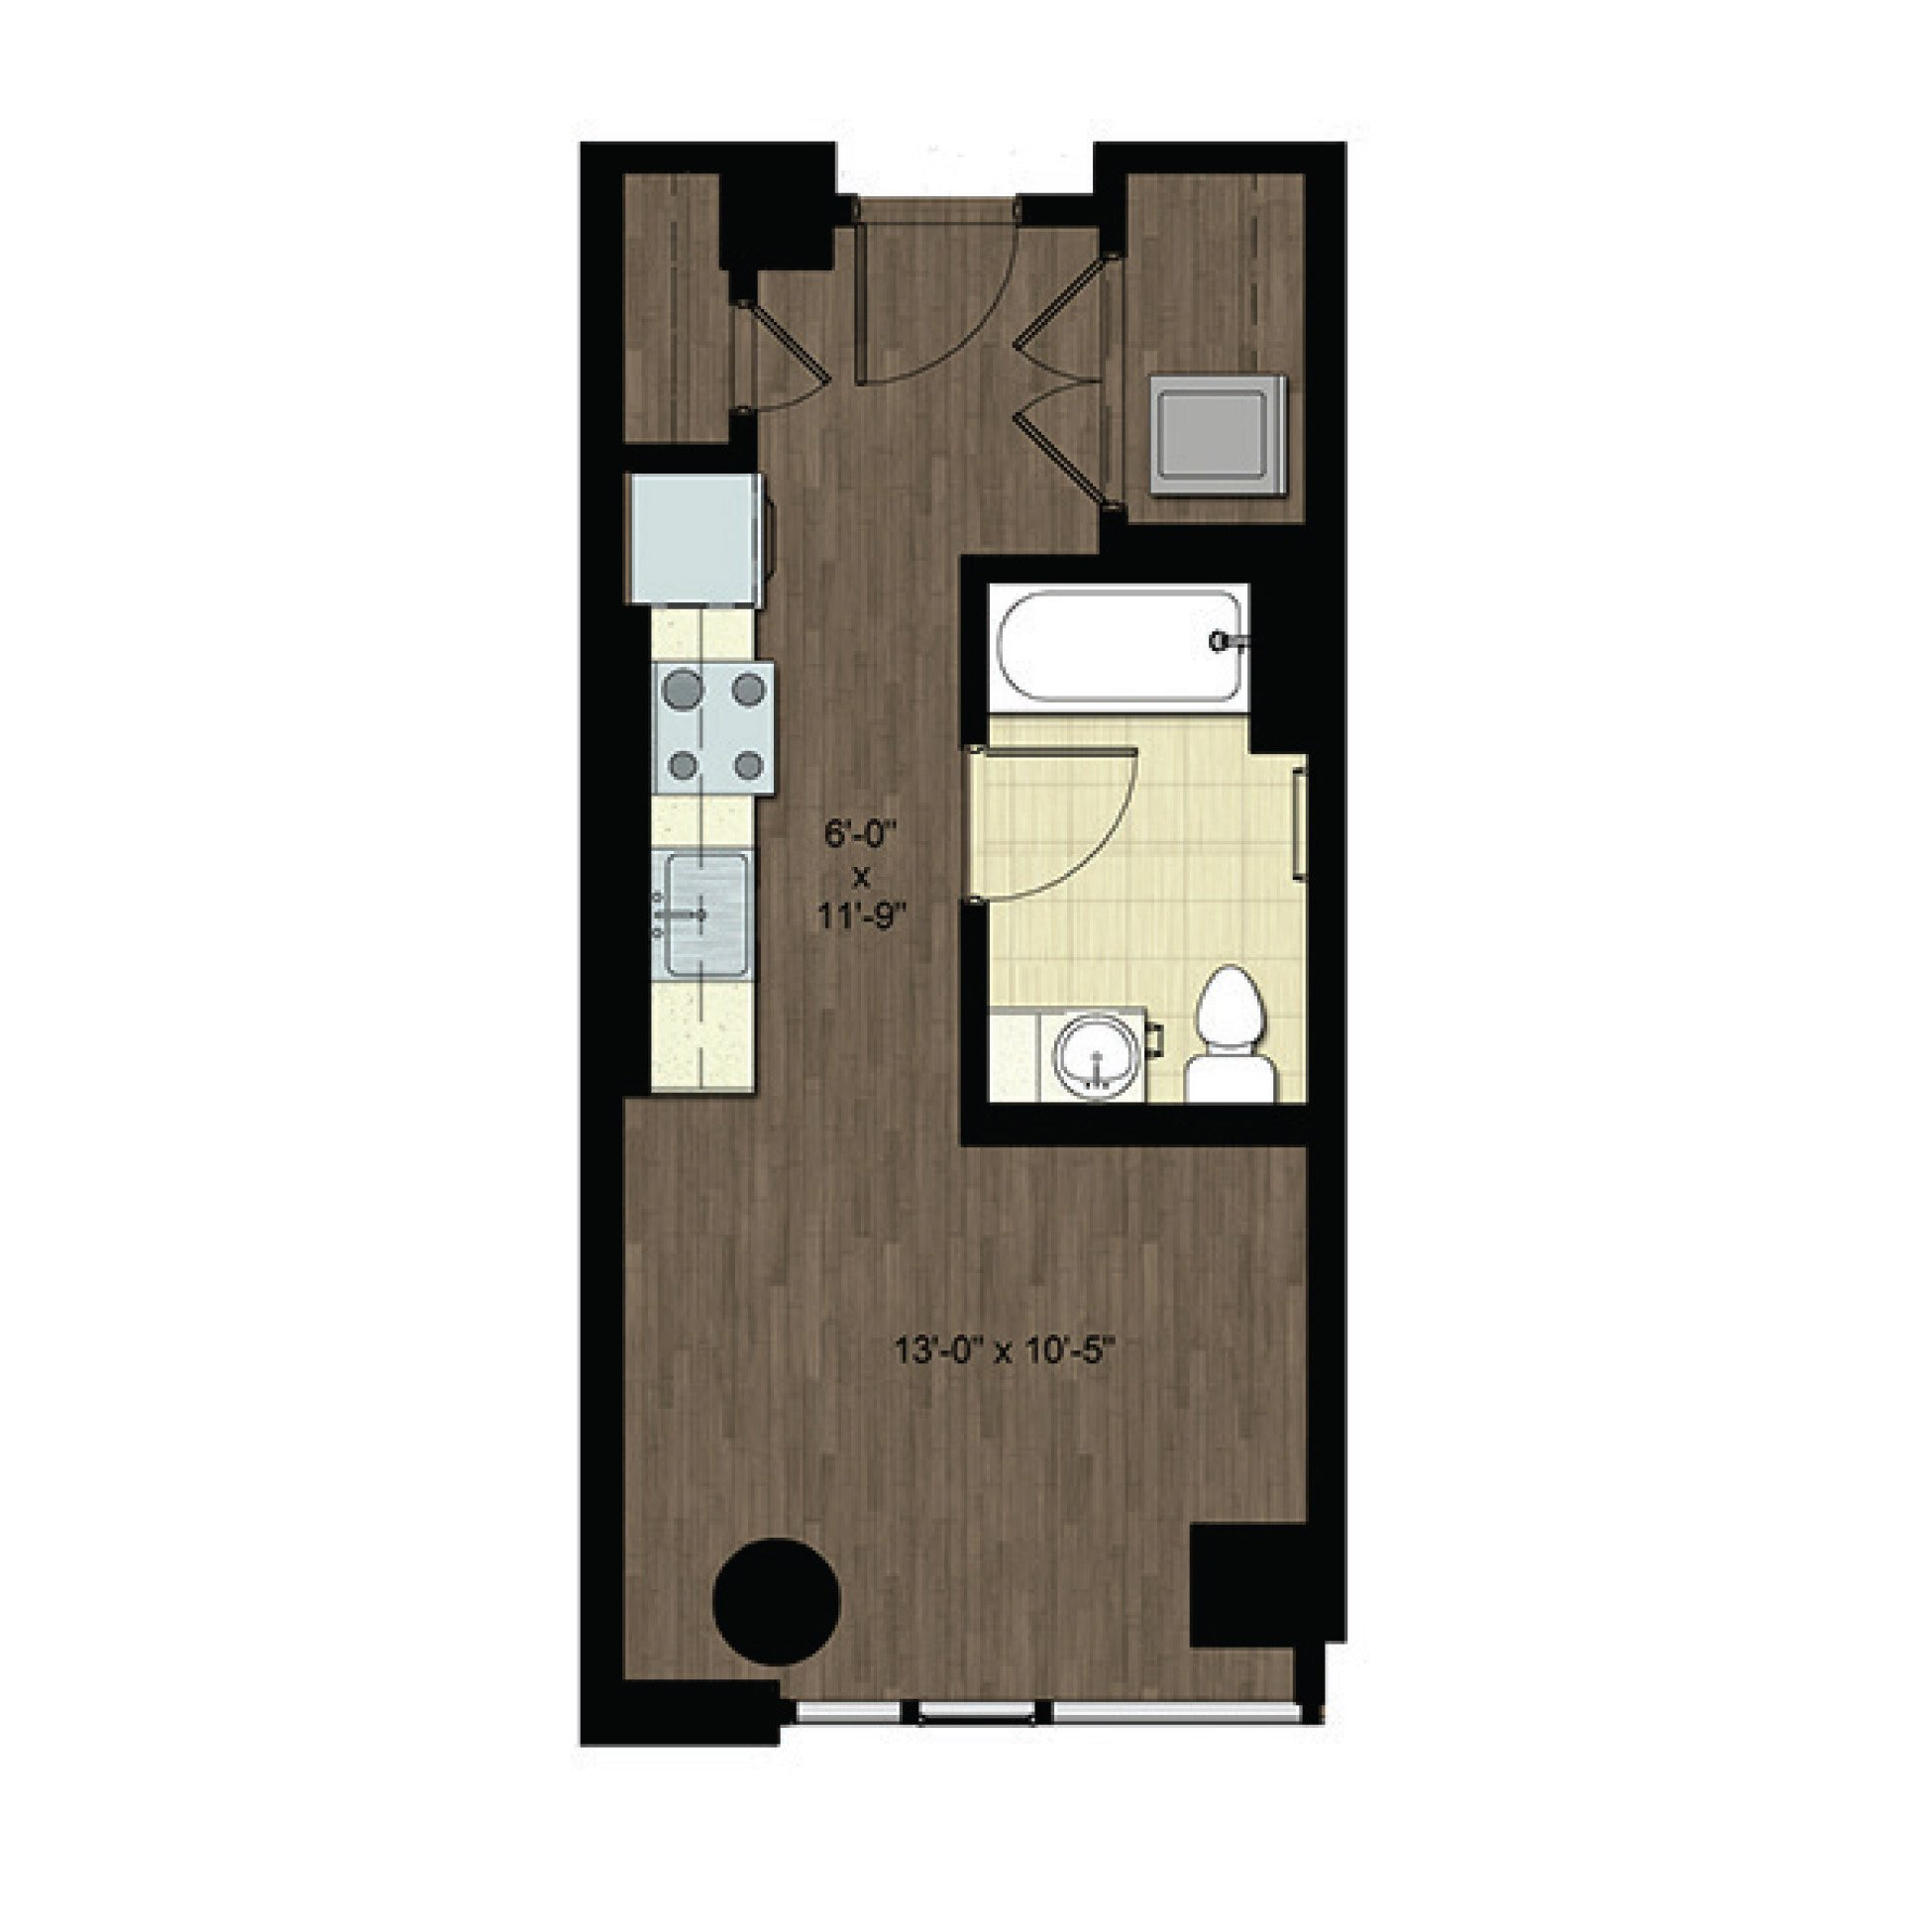 Gateway West Loop Chicago, IL | Welcome Home on chicago theater seating layout, chicago brownstone floor plans, chicago loft floor plans, london row houses floor plans,